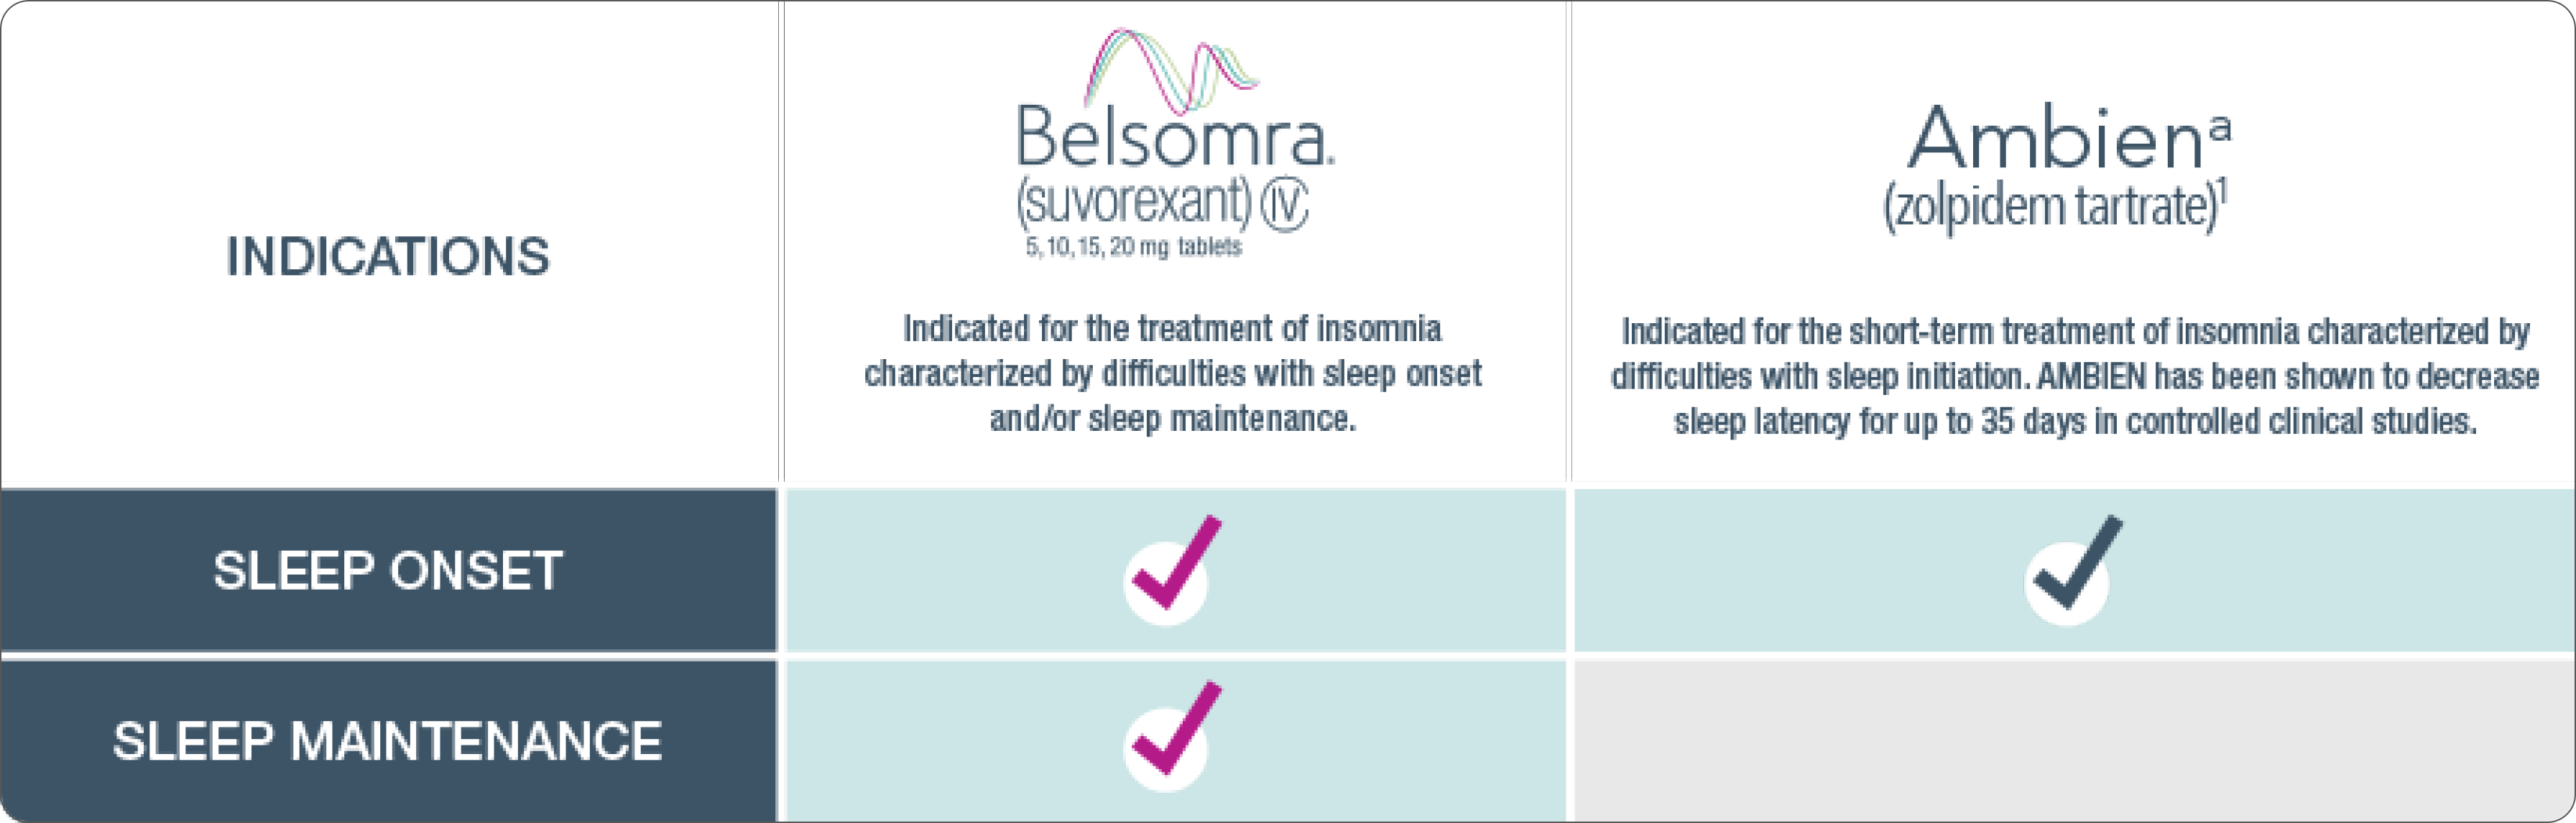 BELSOMRA® (suvorexant) C-IV Is Indicated for Treatment of Insomnia Patients Characterized by Difficulties With Sleep Onset and/or Sleep Maintenance